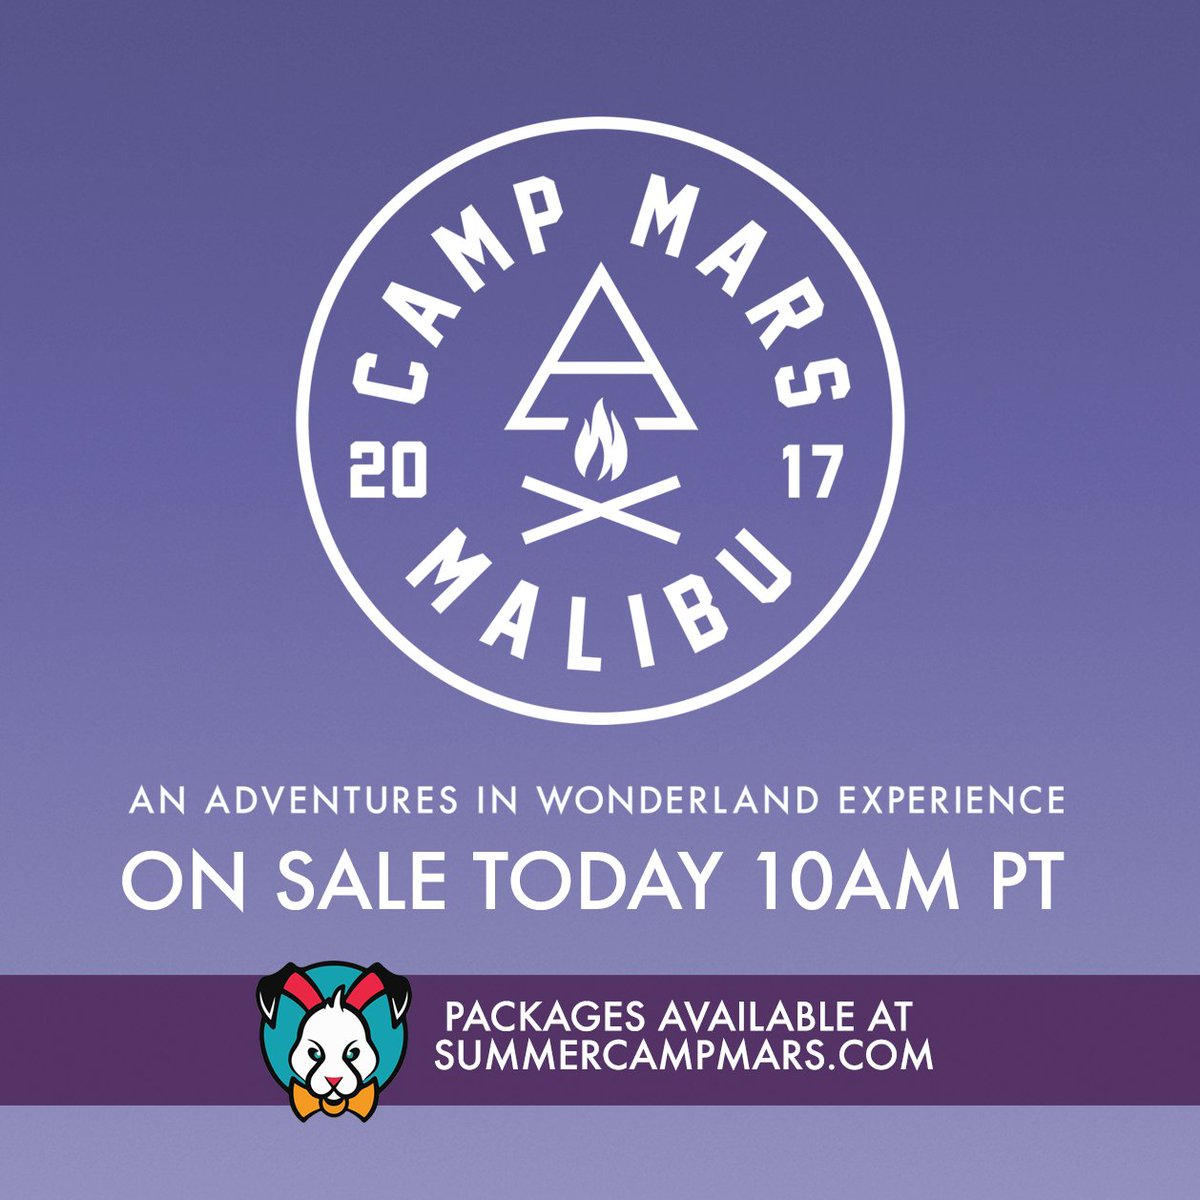 Ready? ONE HOUR UNTIL CAMP MARS FESTIVAL 2017 ON SALE! https://t.co/KCDYtBAekt #CampMars https://t.co/mqtvrafELB